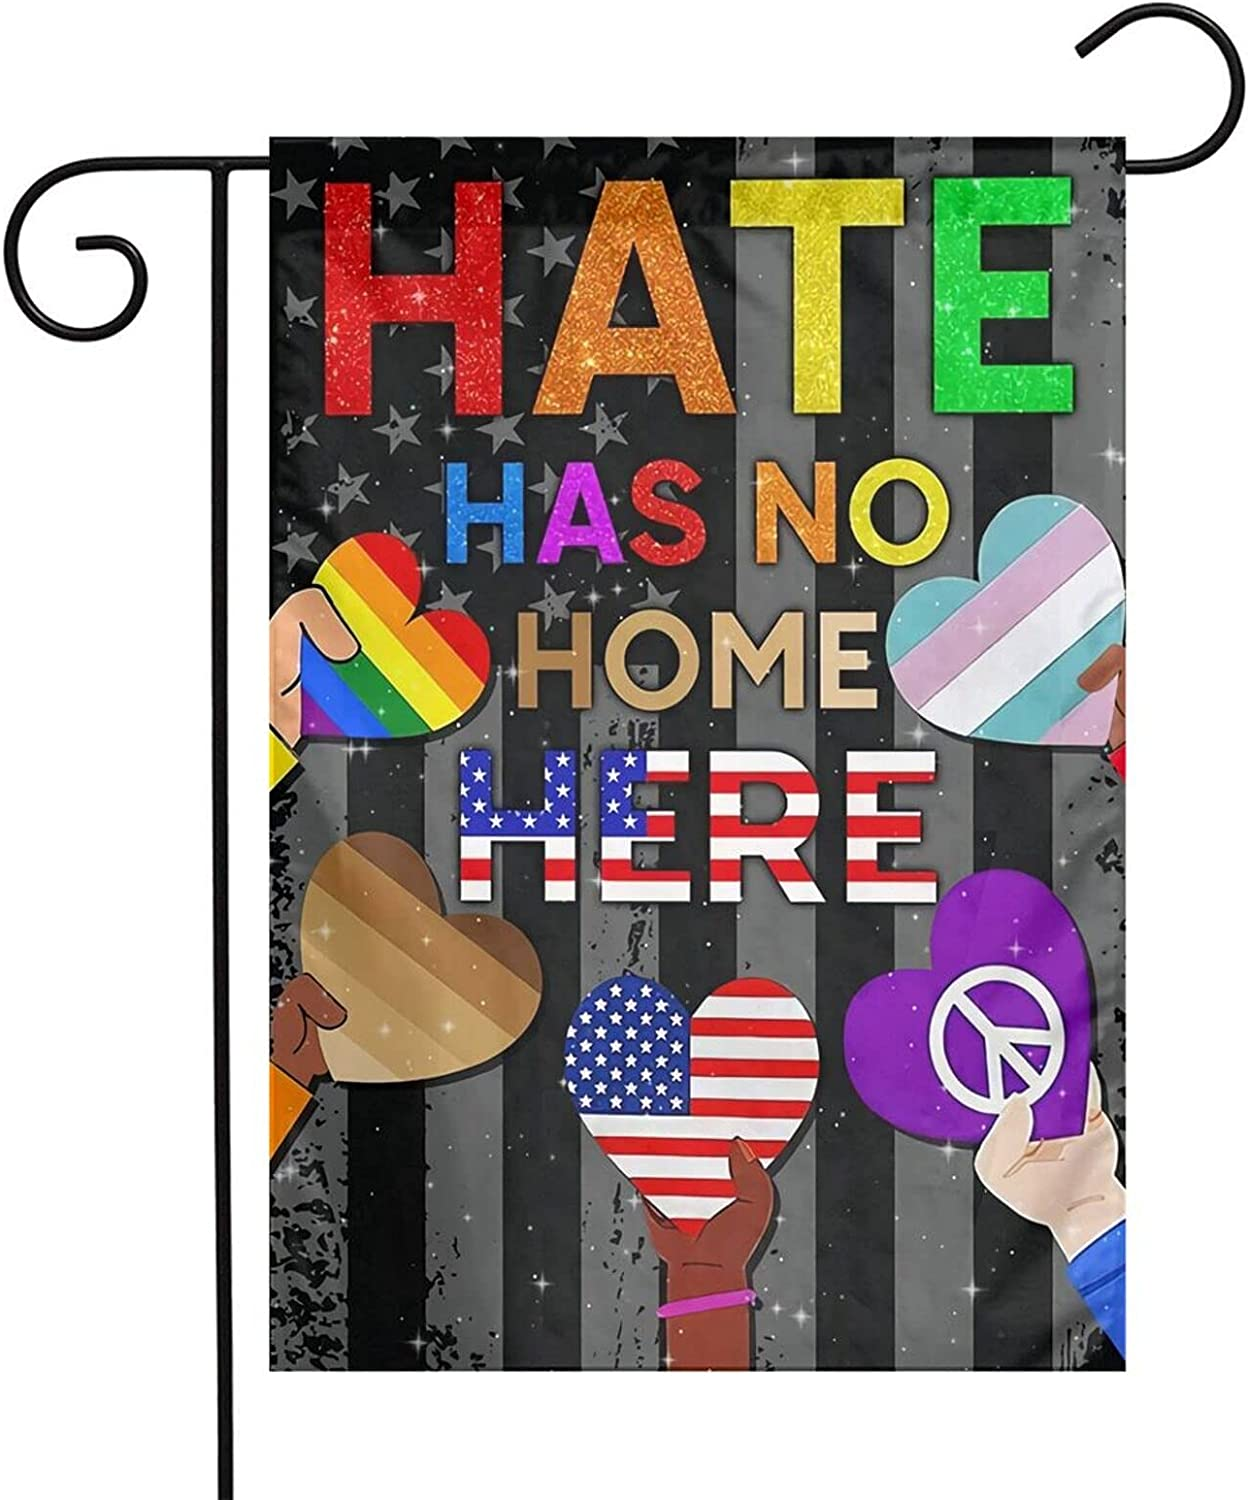 Hate Has No Home Here Garden Flag, 12 x 18 inch Yard Flag Human Rights Justice Sign, BLM Lawn Sign, Feminism Sign, Protest Sign Banner for Outdoor Yard Decoration